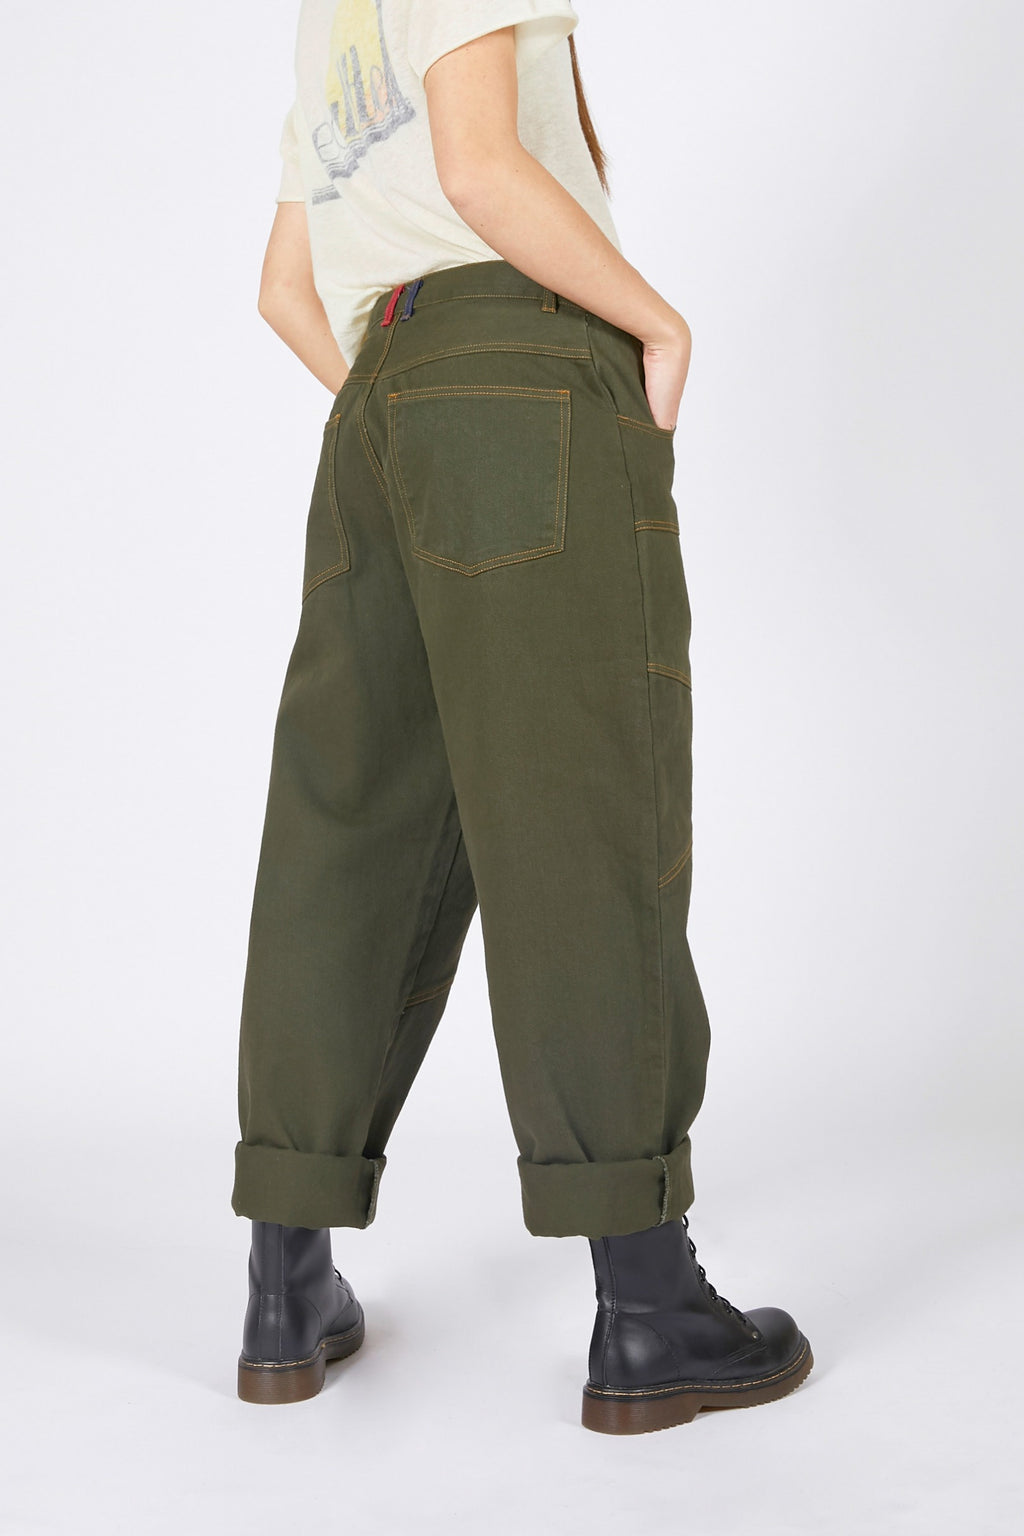 Adrian Unisex Green Denim Jeans